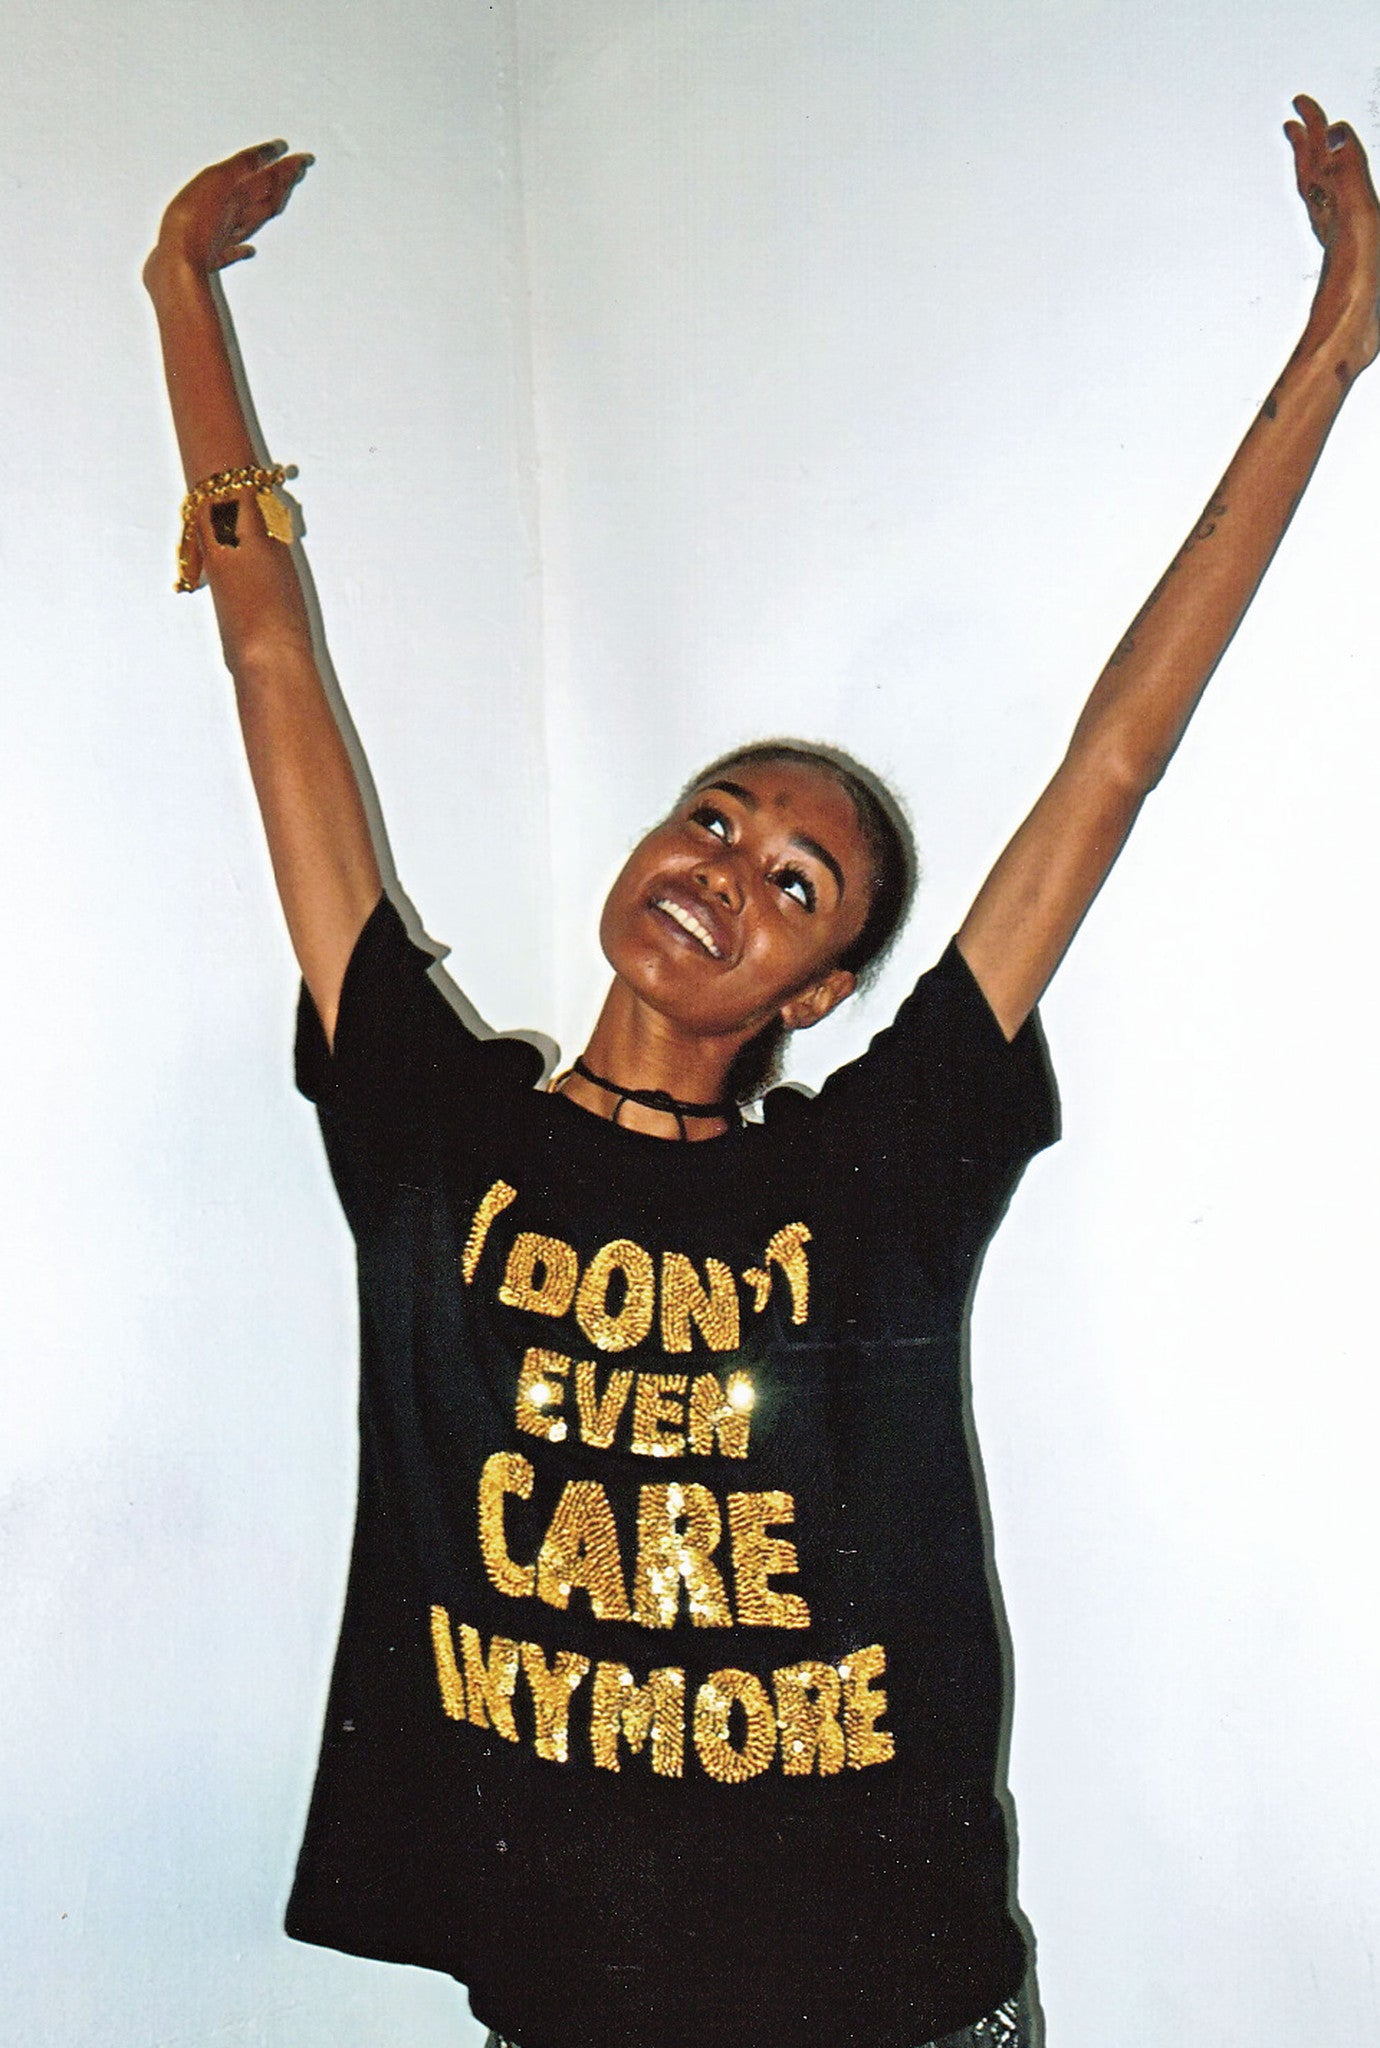 IDGAF cotton tee, I don't even care anymore cotton tee, cotton tee, sequinned tee, sequinned text, sequinned words, sequinned, sequins, cotton tee, cotton t-shirt, tee, t-shirt, gold, gold sequins, black, sequinned tee, discount universe, di$count universe